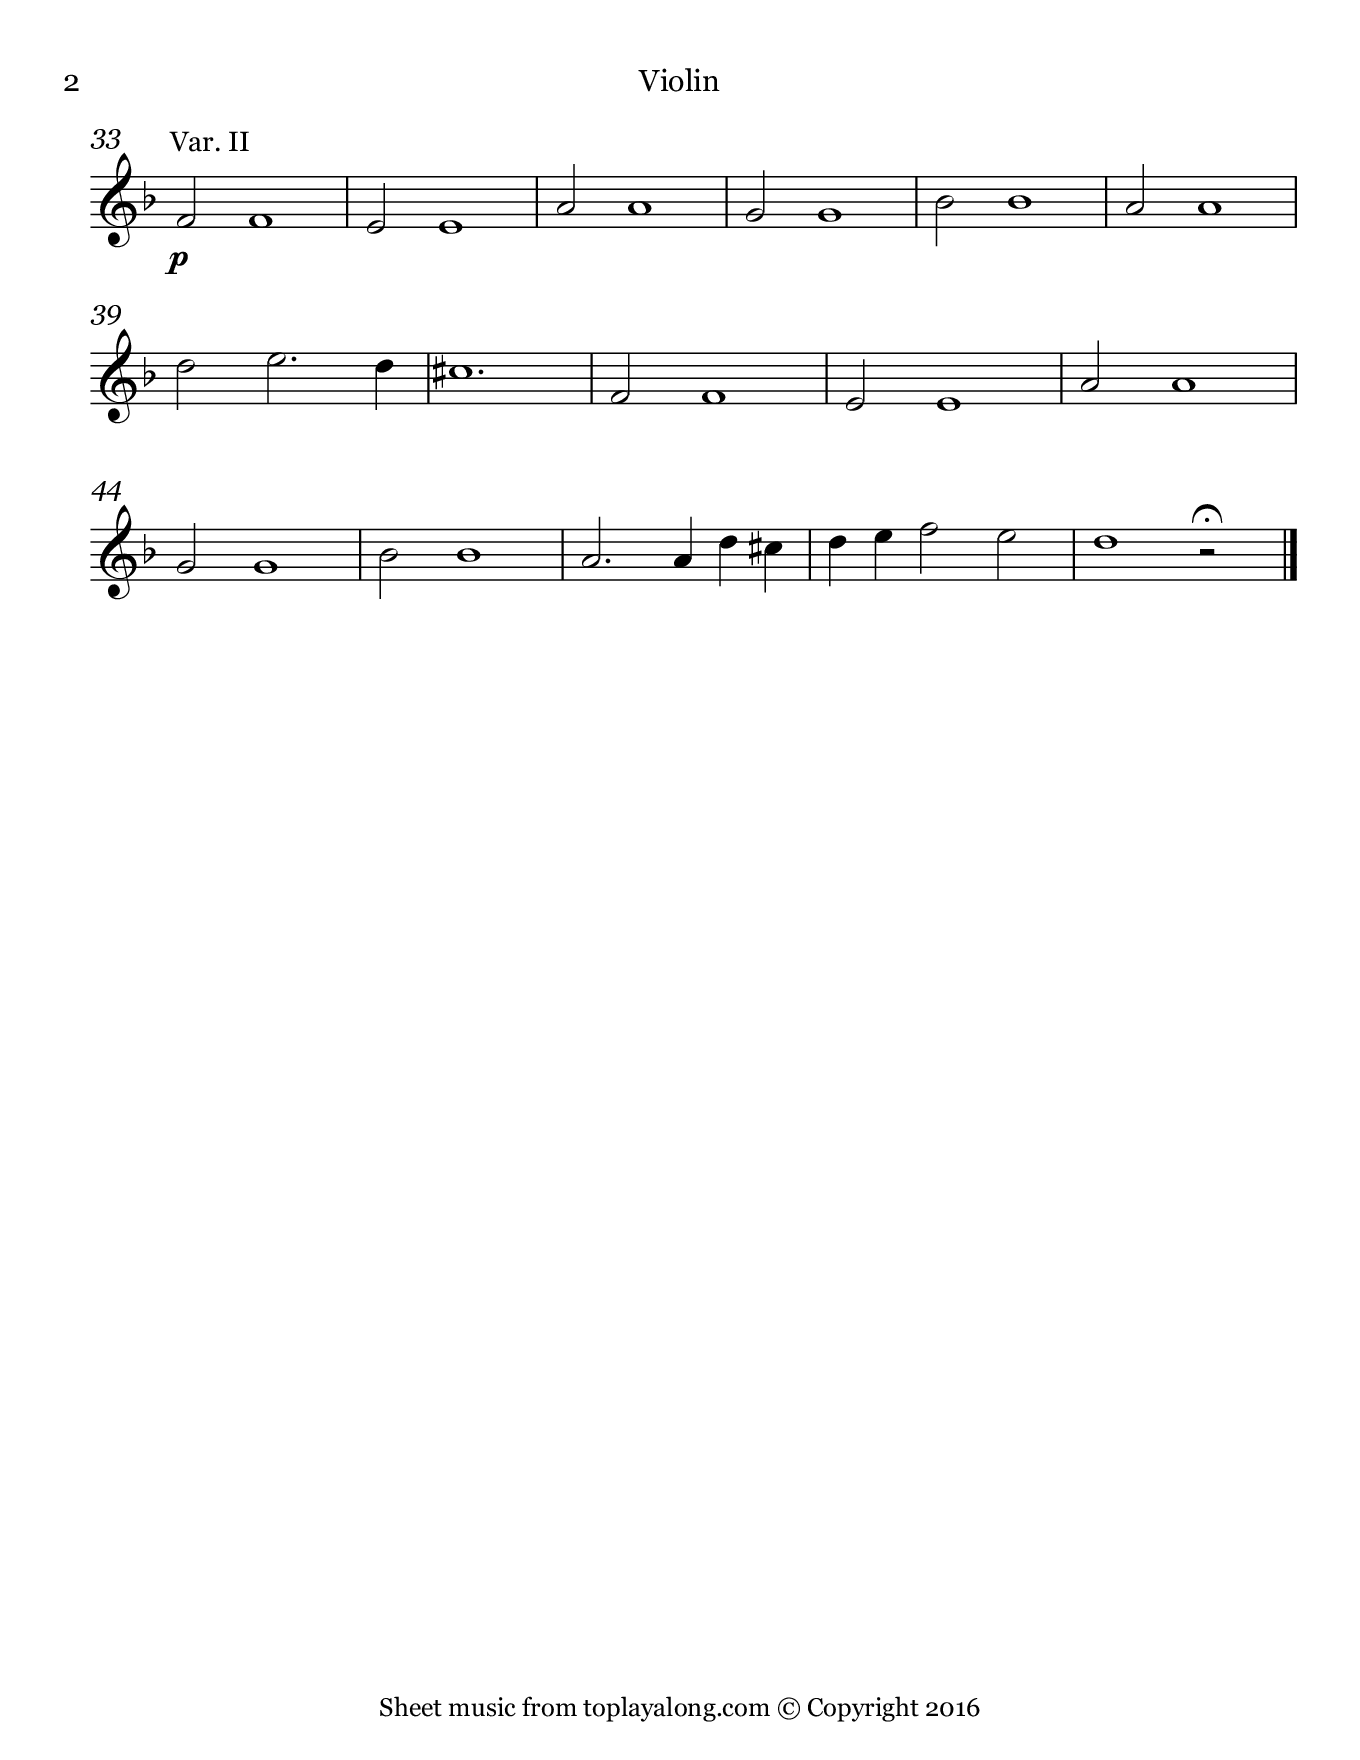 Sarabande from Suite in D minor by Handel. Sheet music for Violin, page 2.